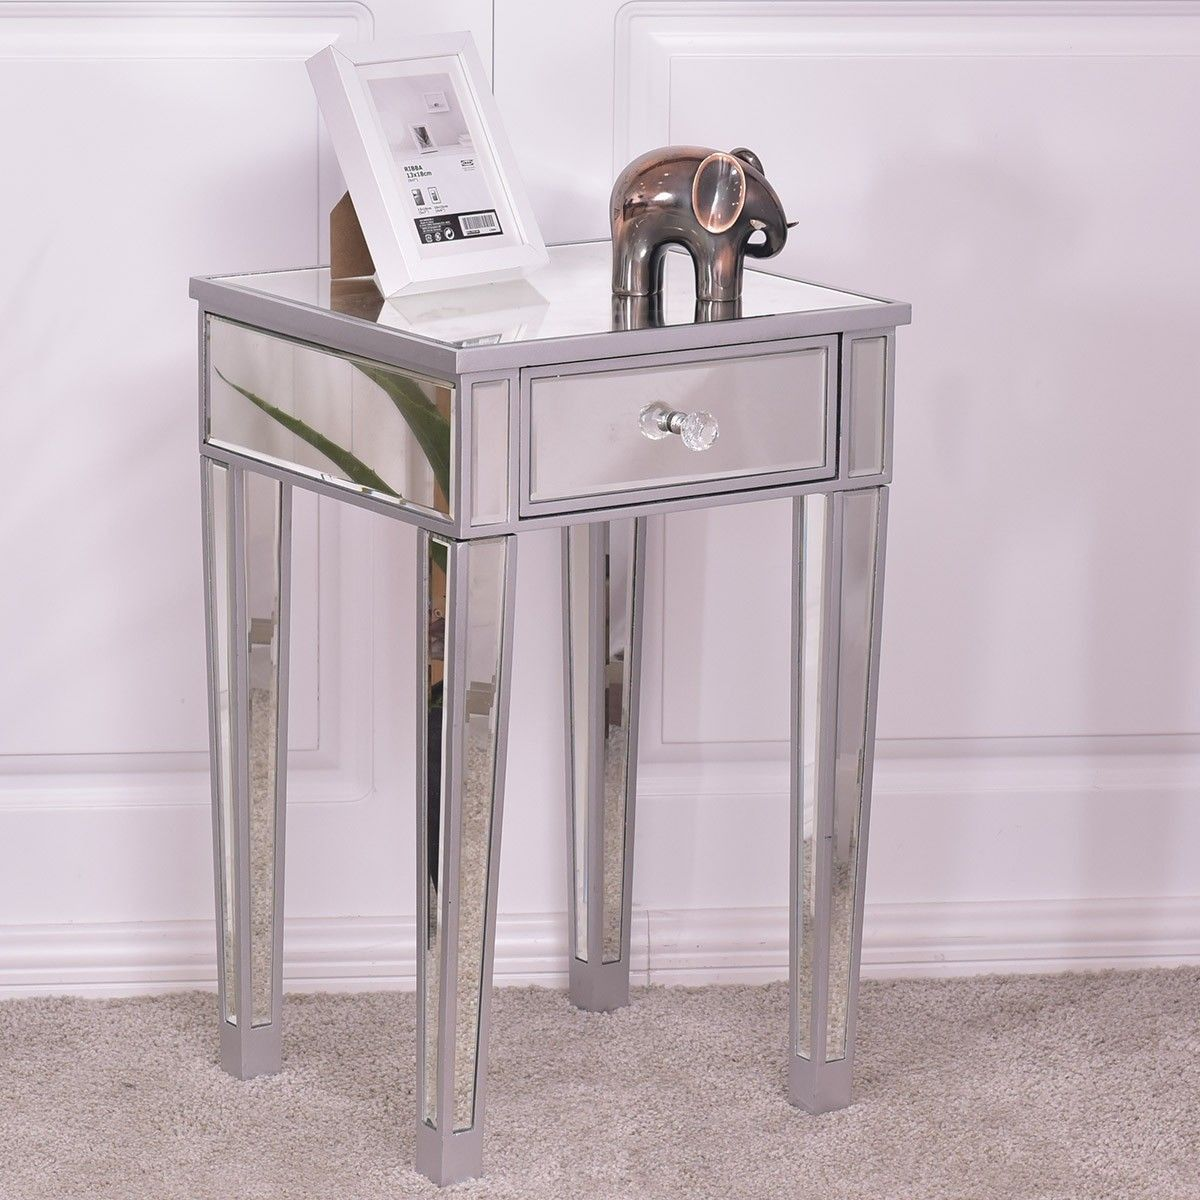 Mirrored Accent Table With Drawer Part - 19: Chic Mirrored Accent Table End Table with Storage Drawer